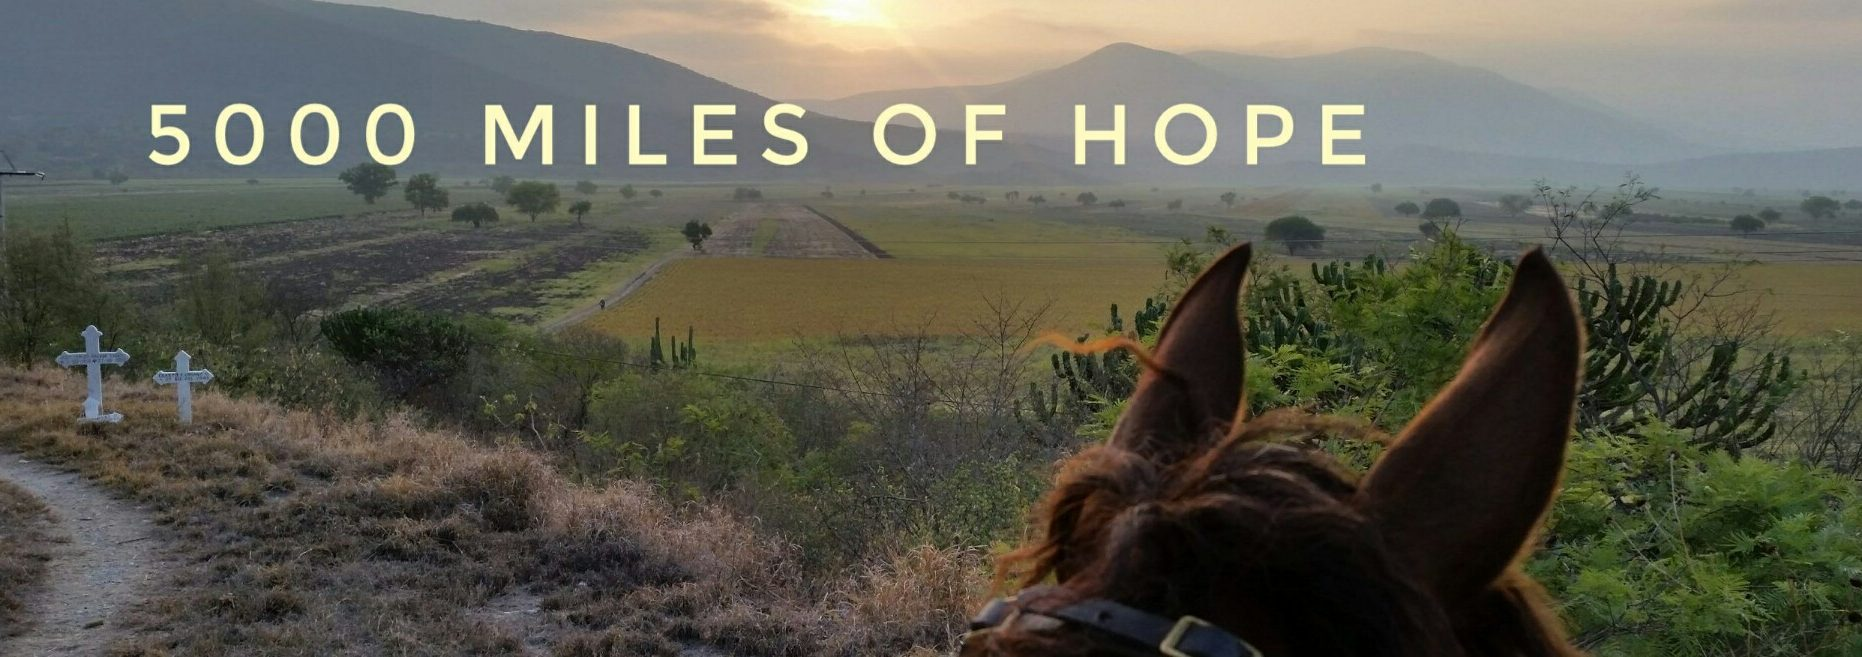 5000 miles of hope solo horse travel